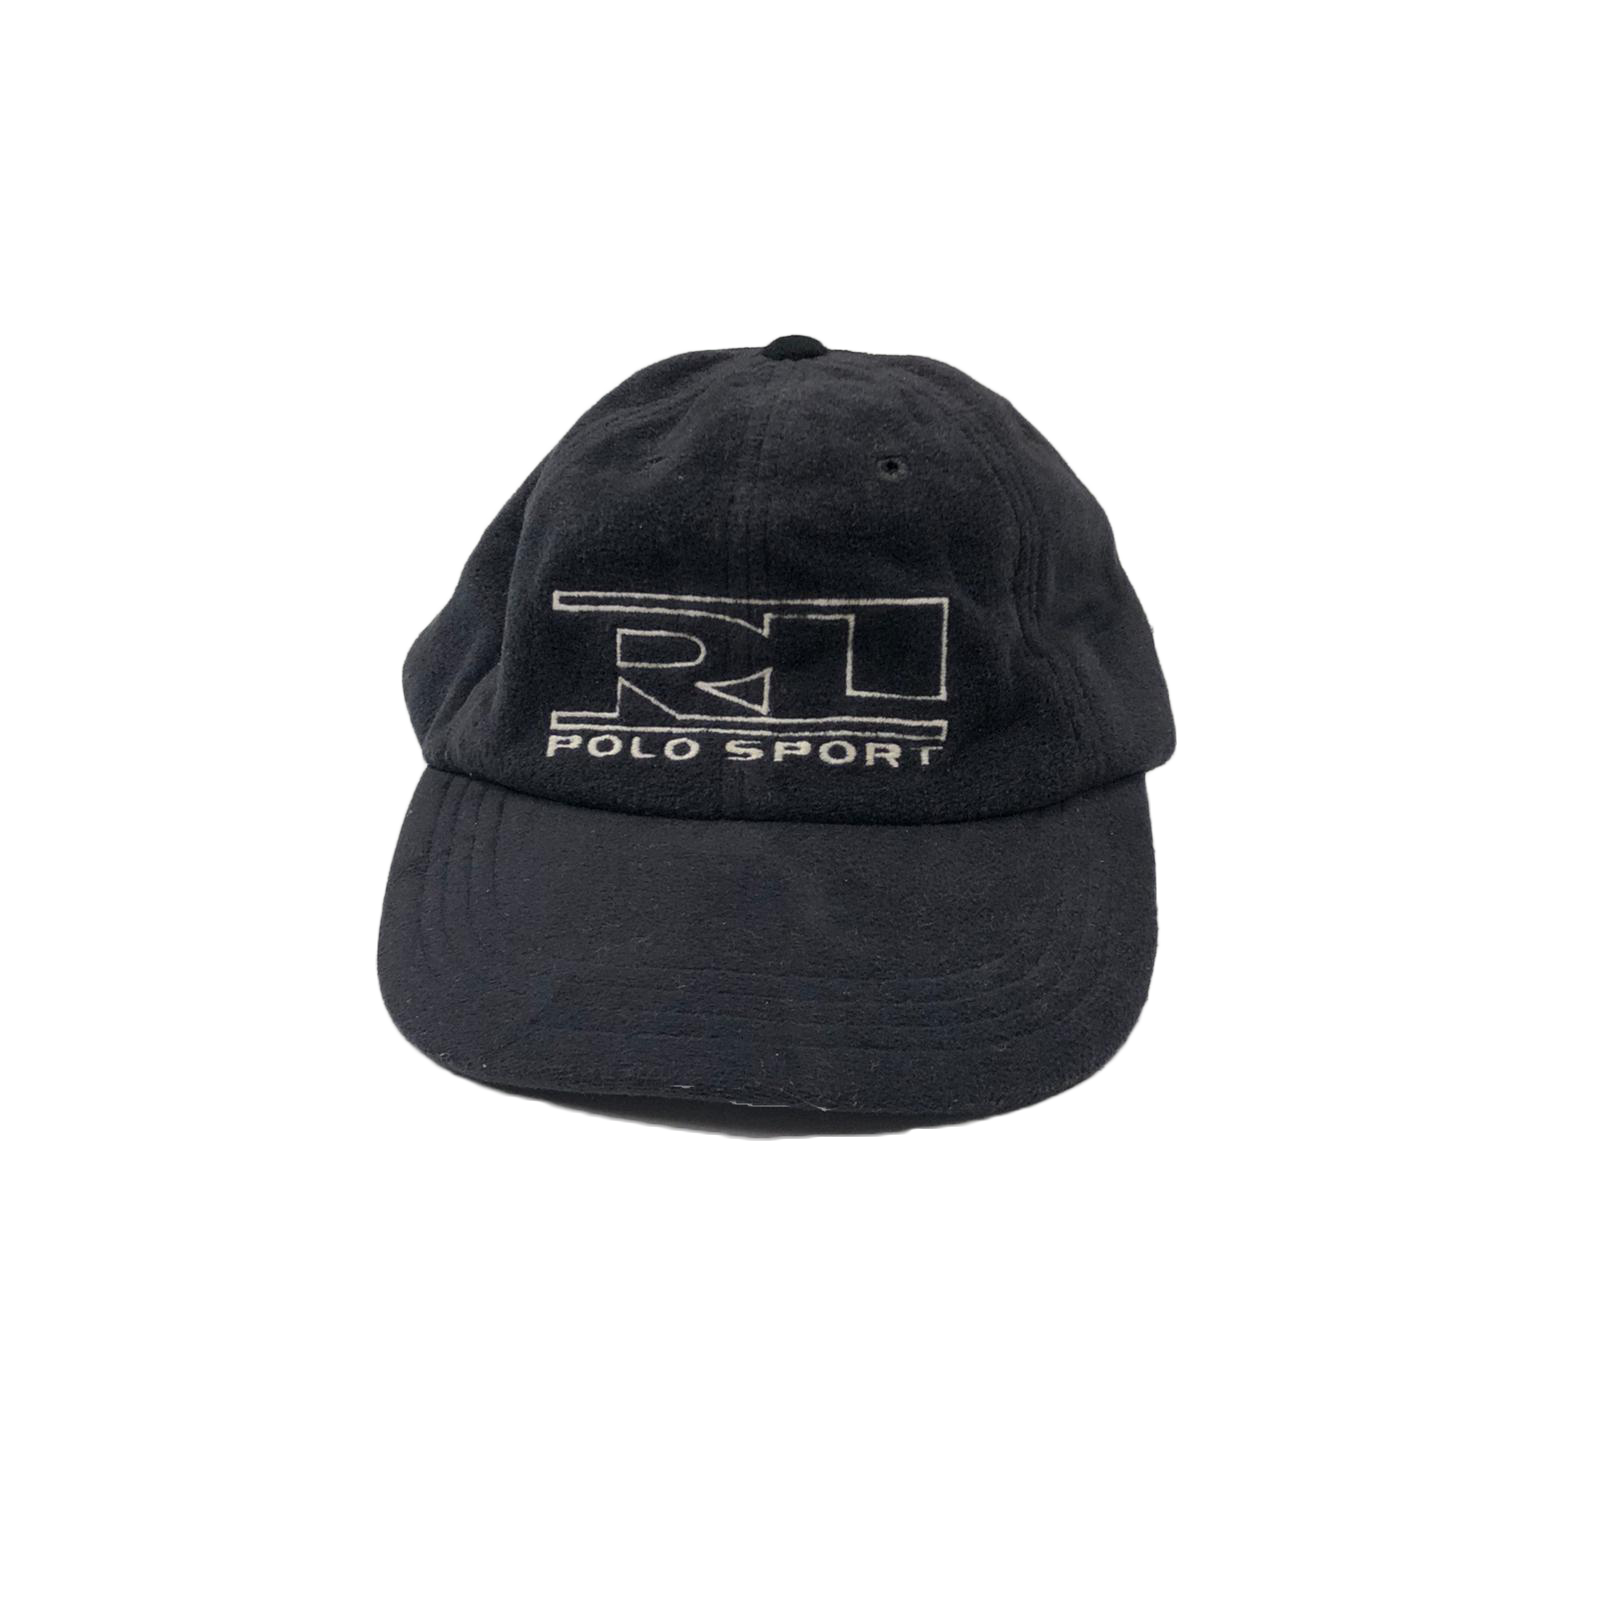 Polo Sport fleece cap